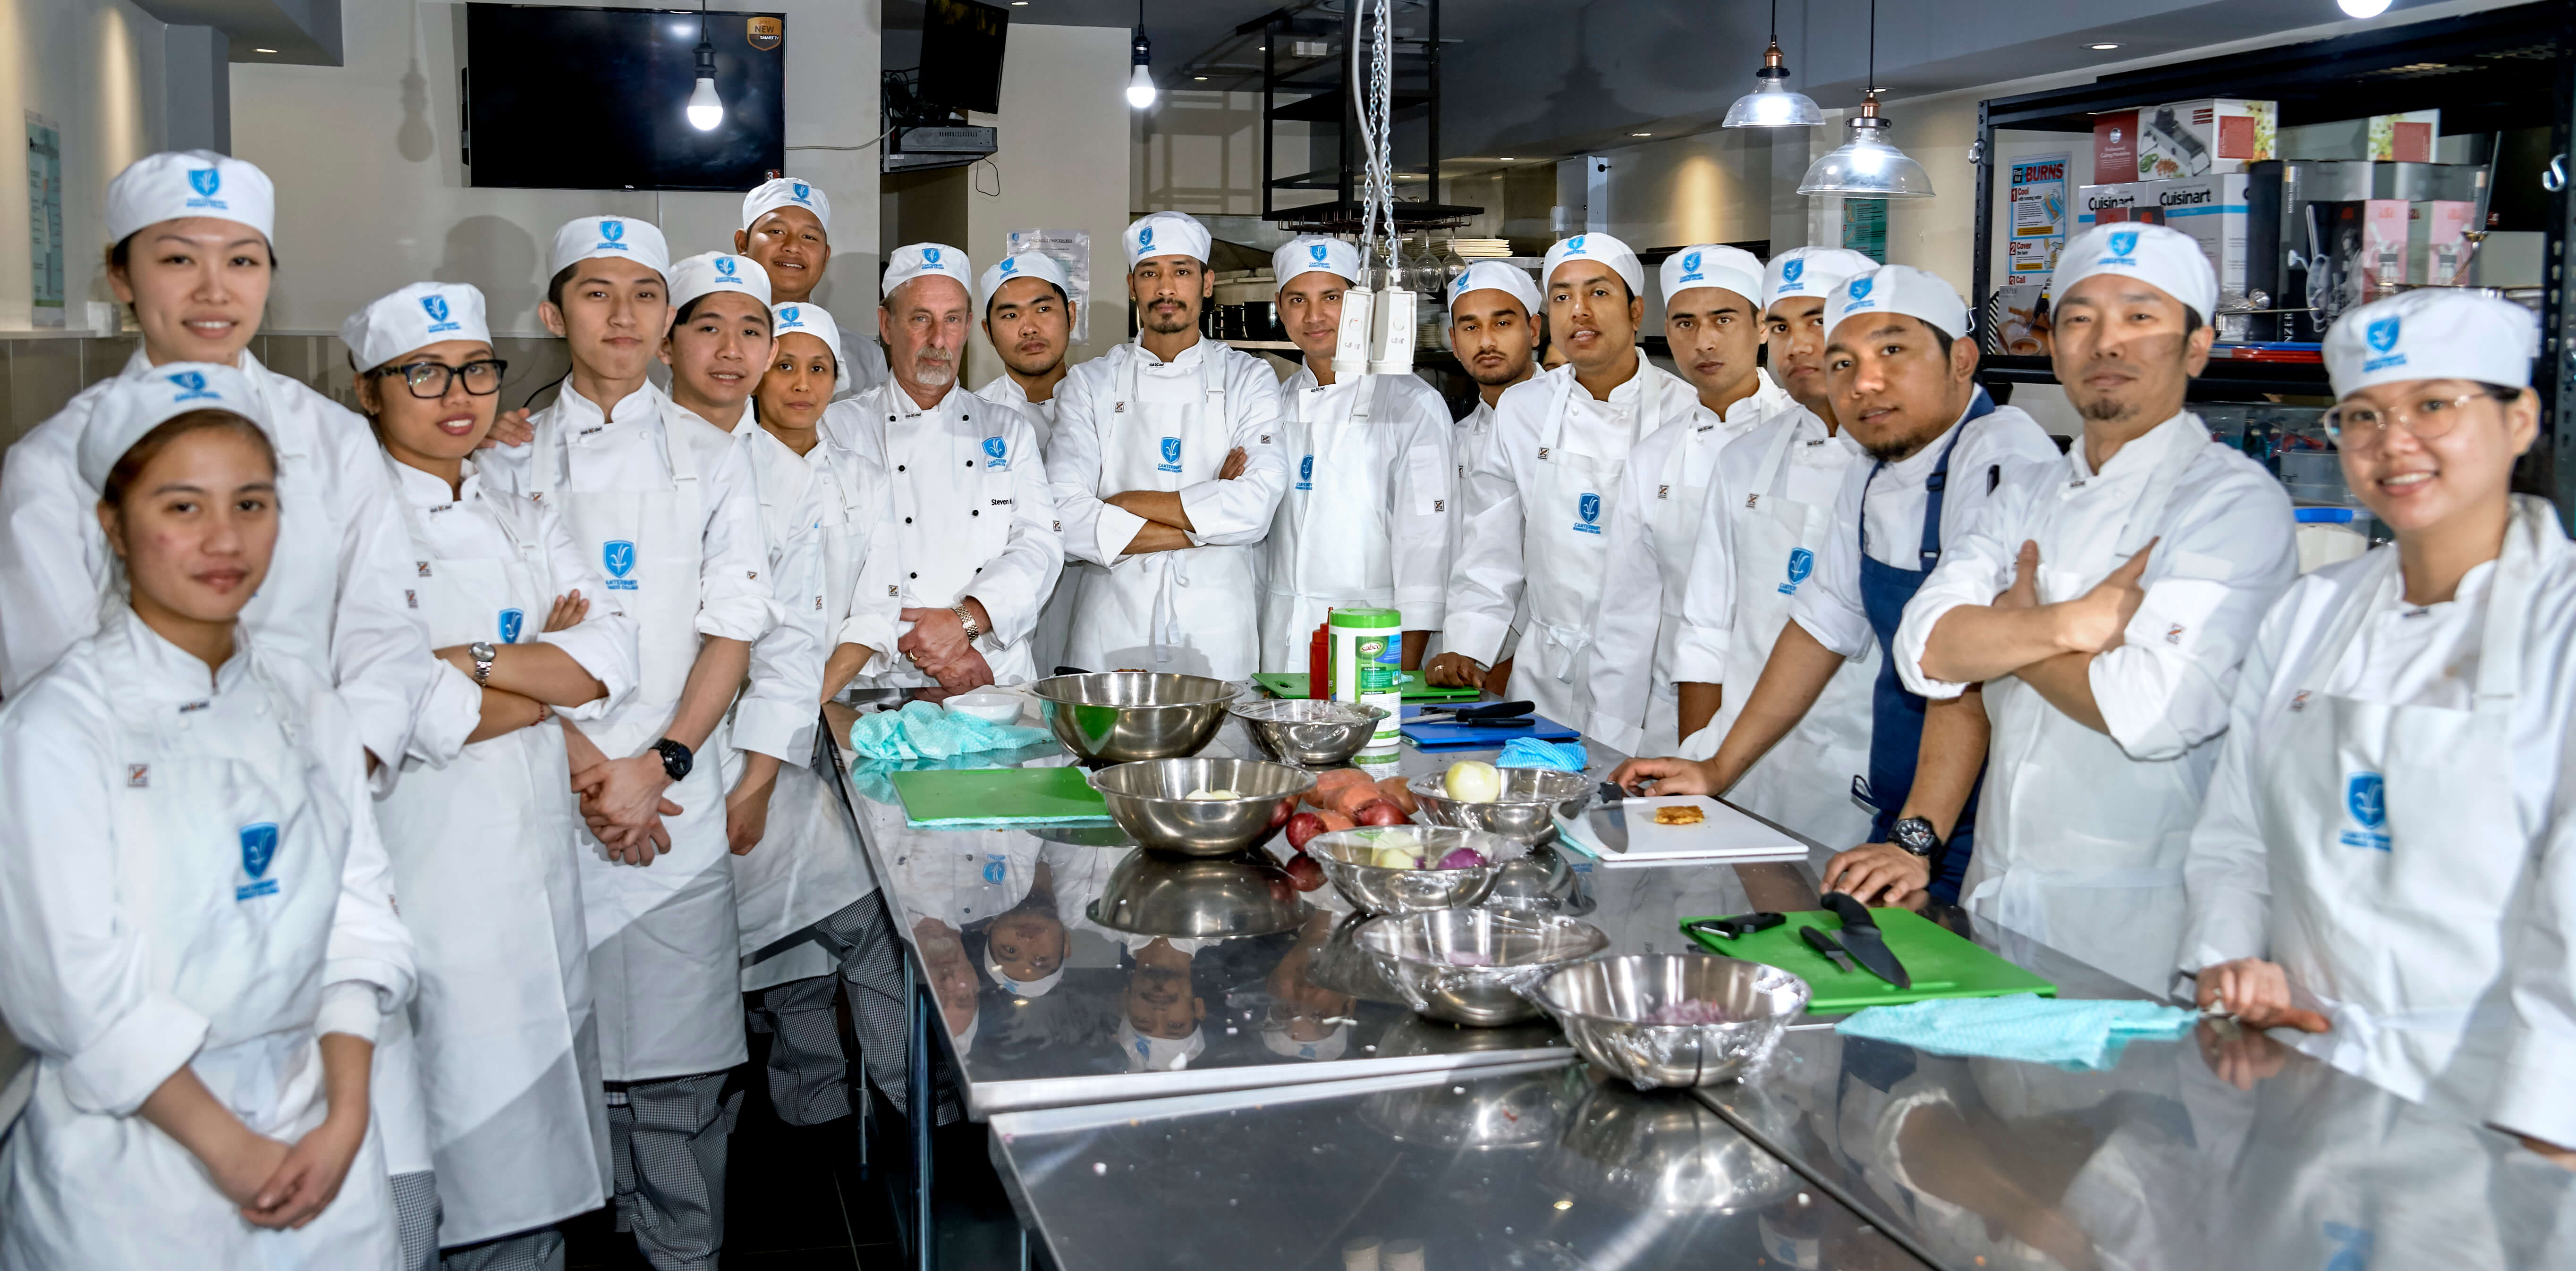 Cbc cookery students